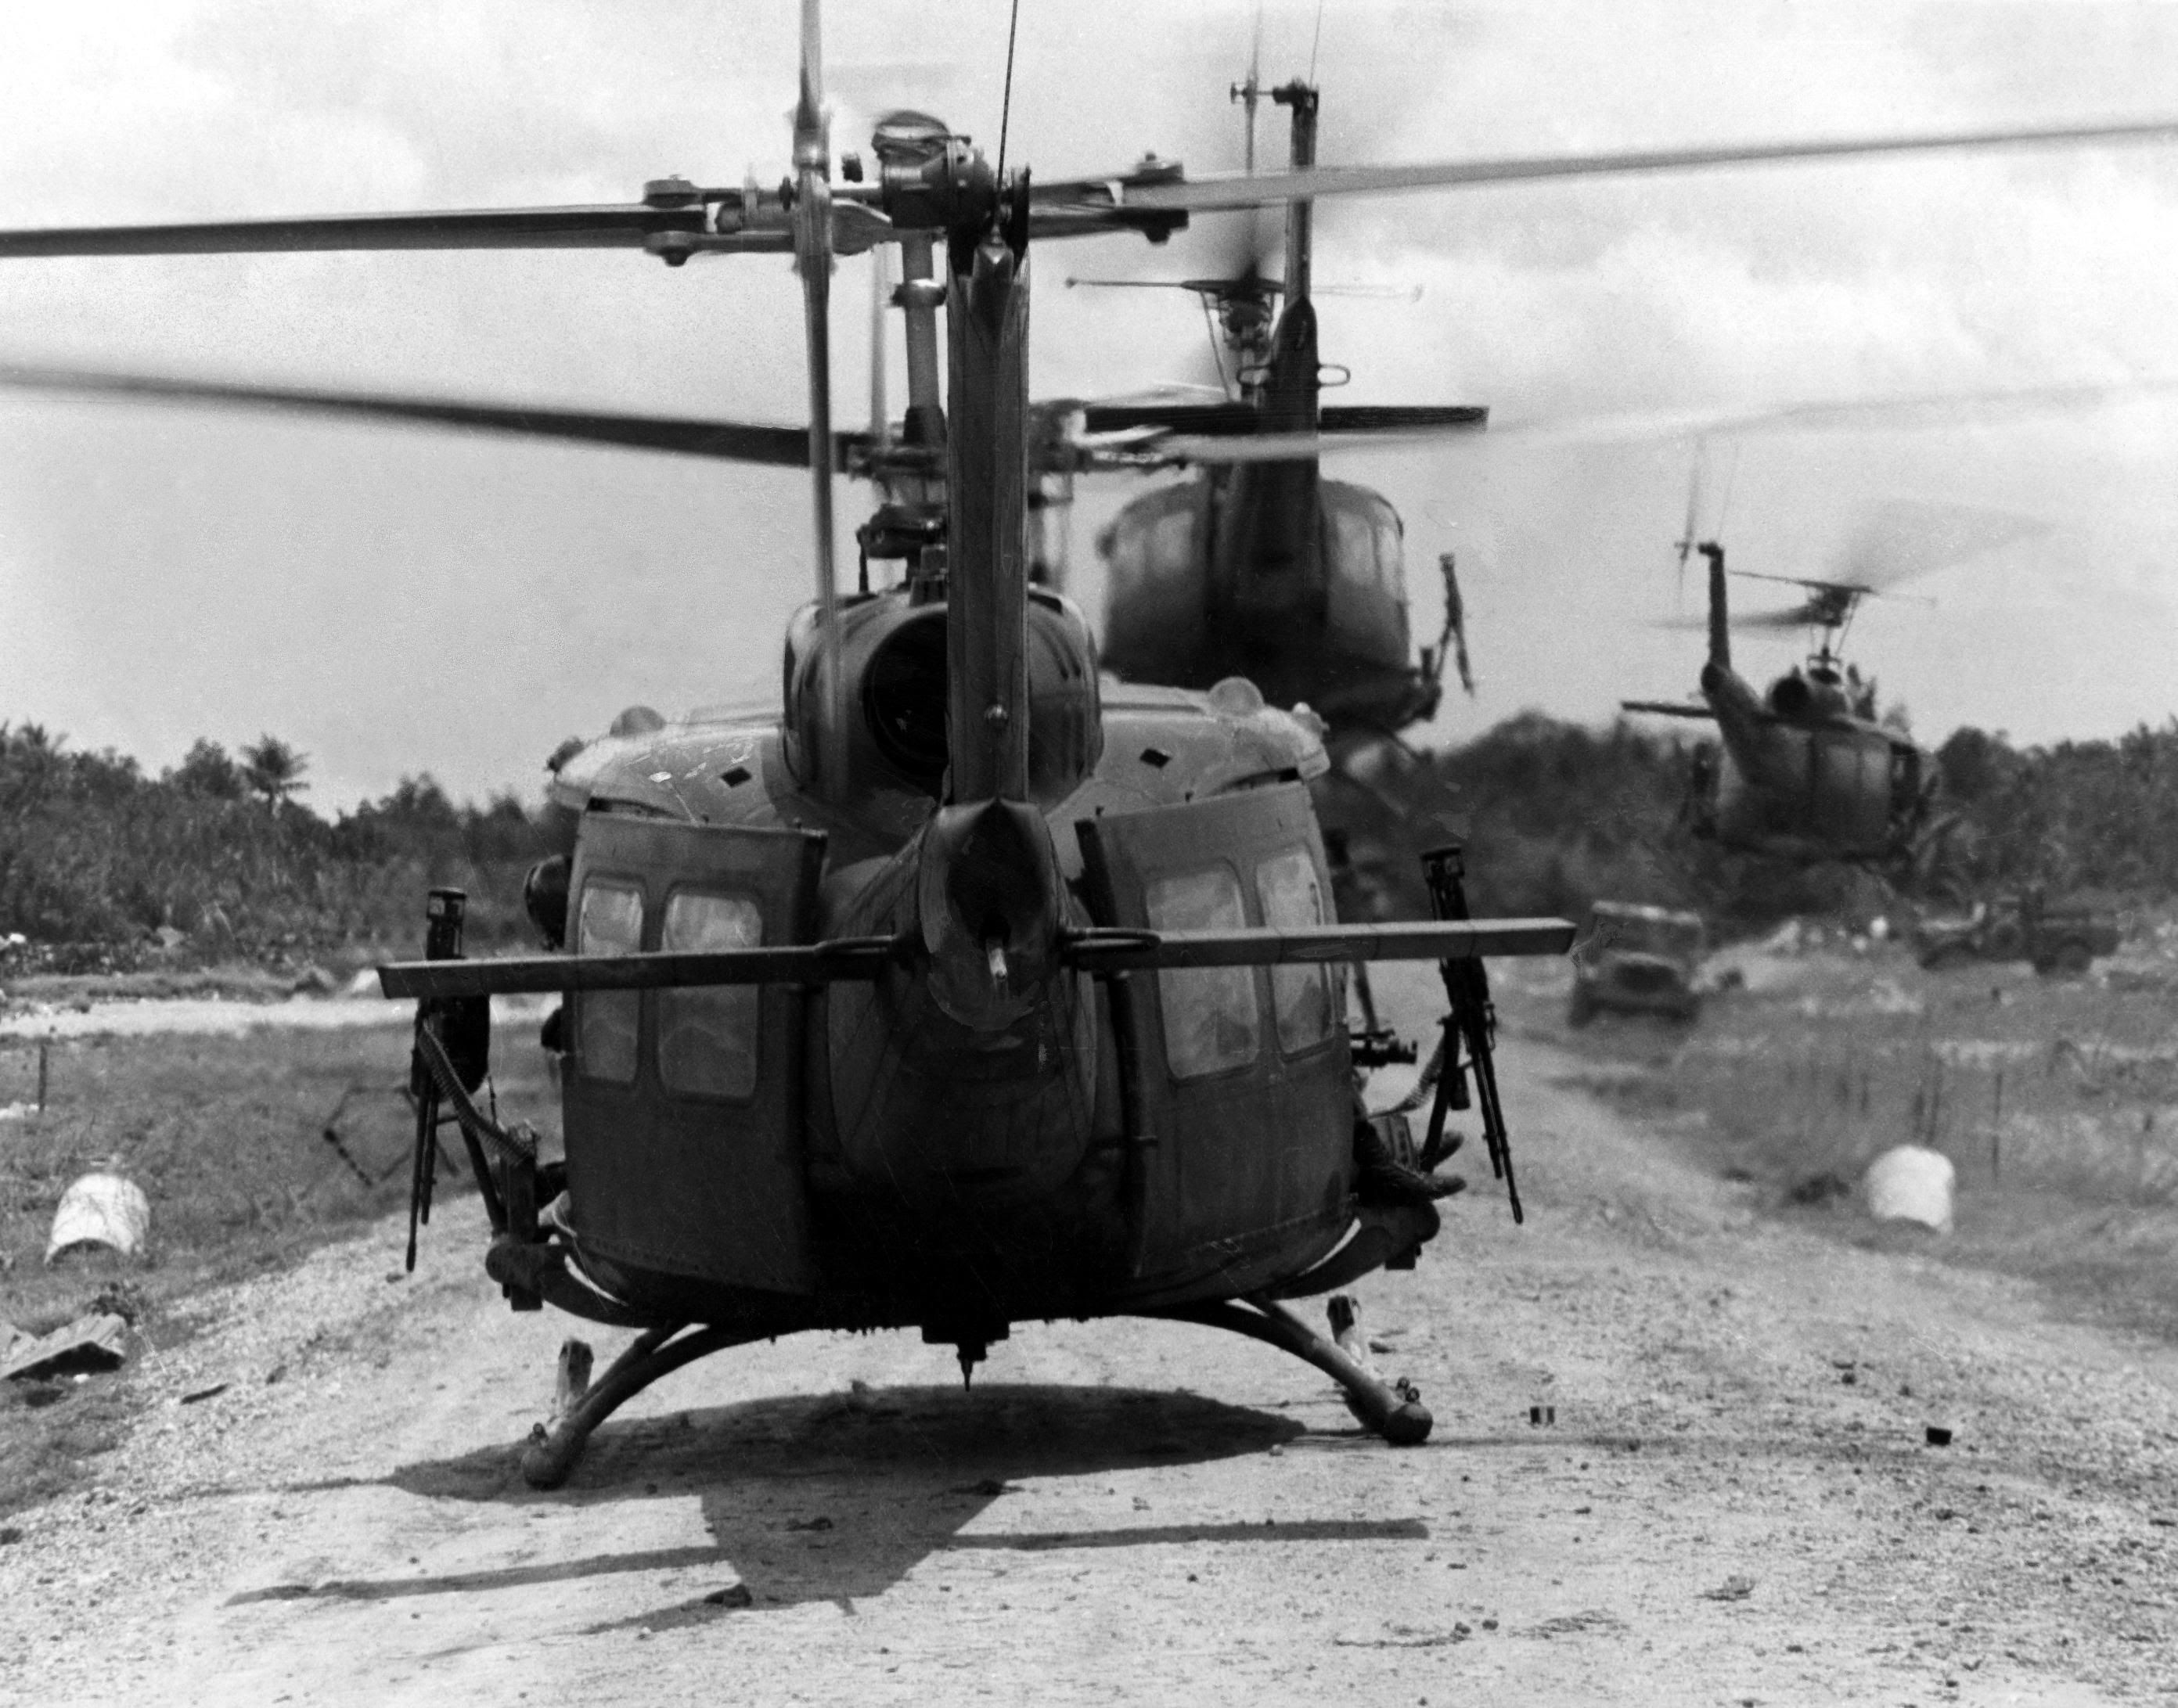 BELL HUEY UH-1 HELICOPTER MANUALS RARE Service tech ... |Bell Helicopter Vietnam